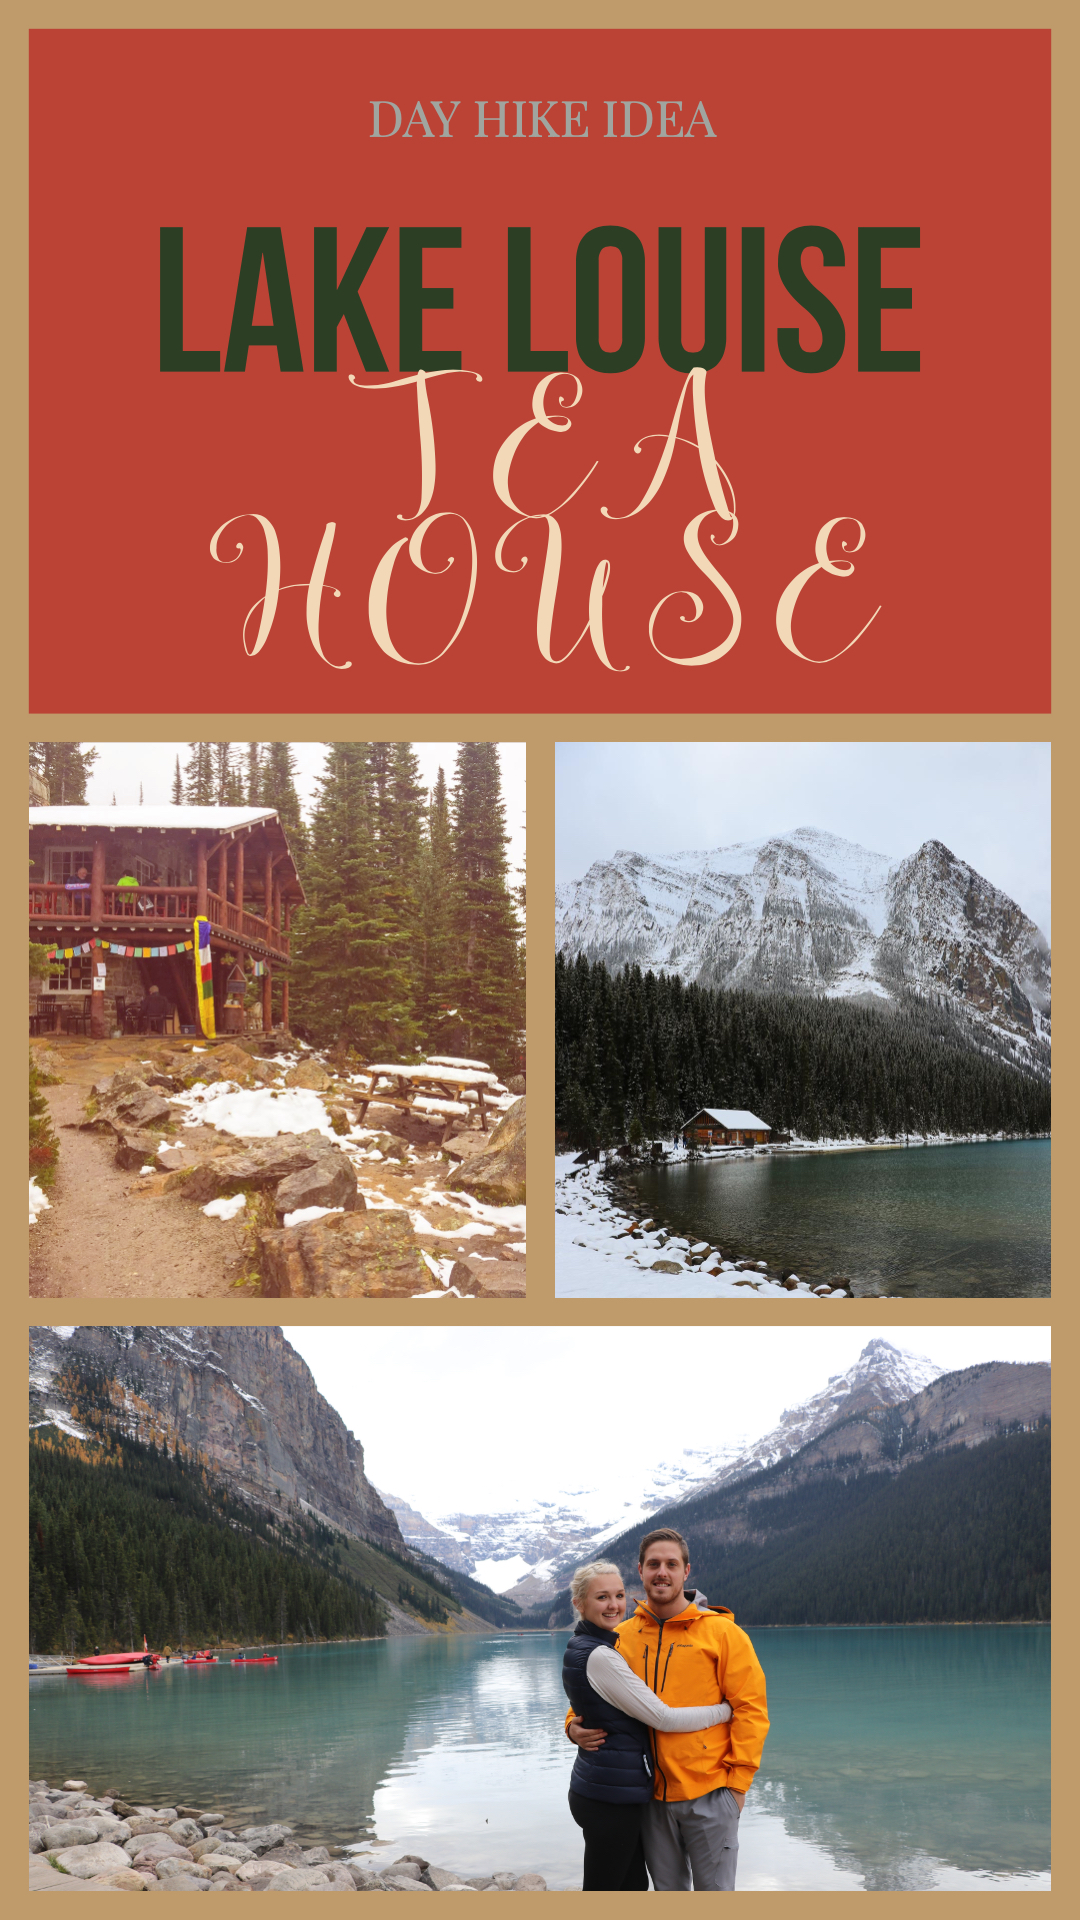 Looking for a hiking trail in Lake Louise? Check out this ake Louise Tea House Hike. Hiking Banff, Lake Louise, Canada.